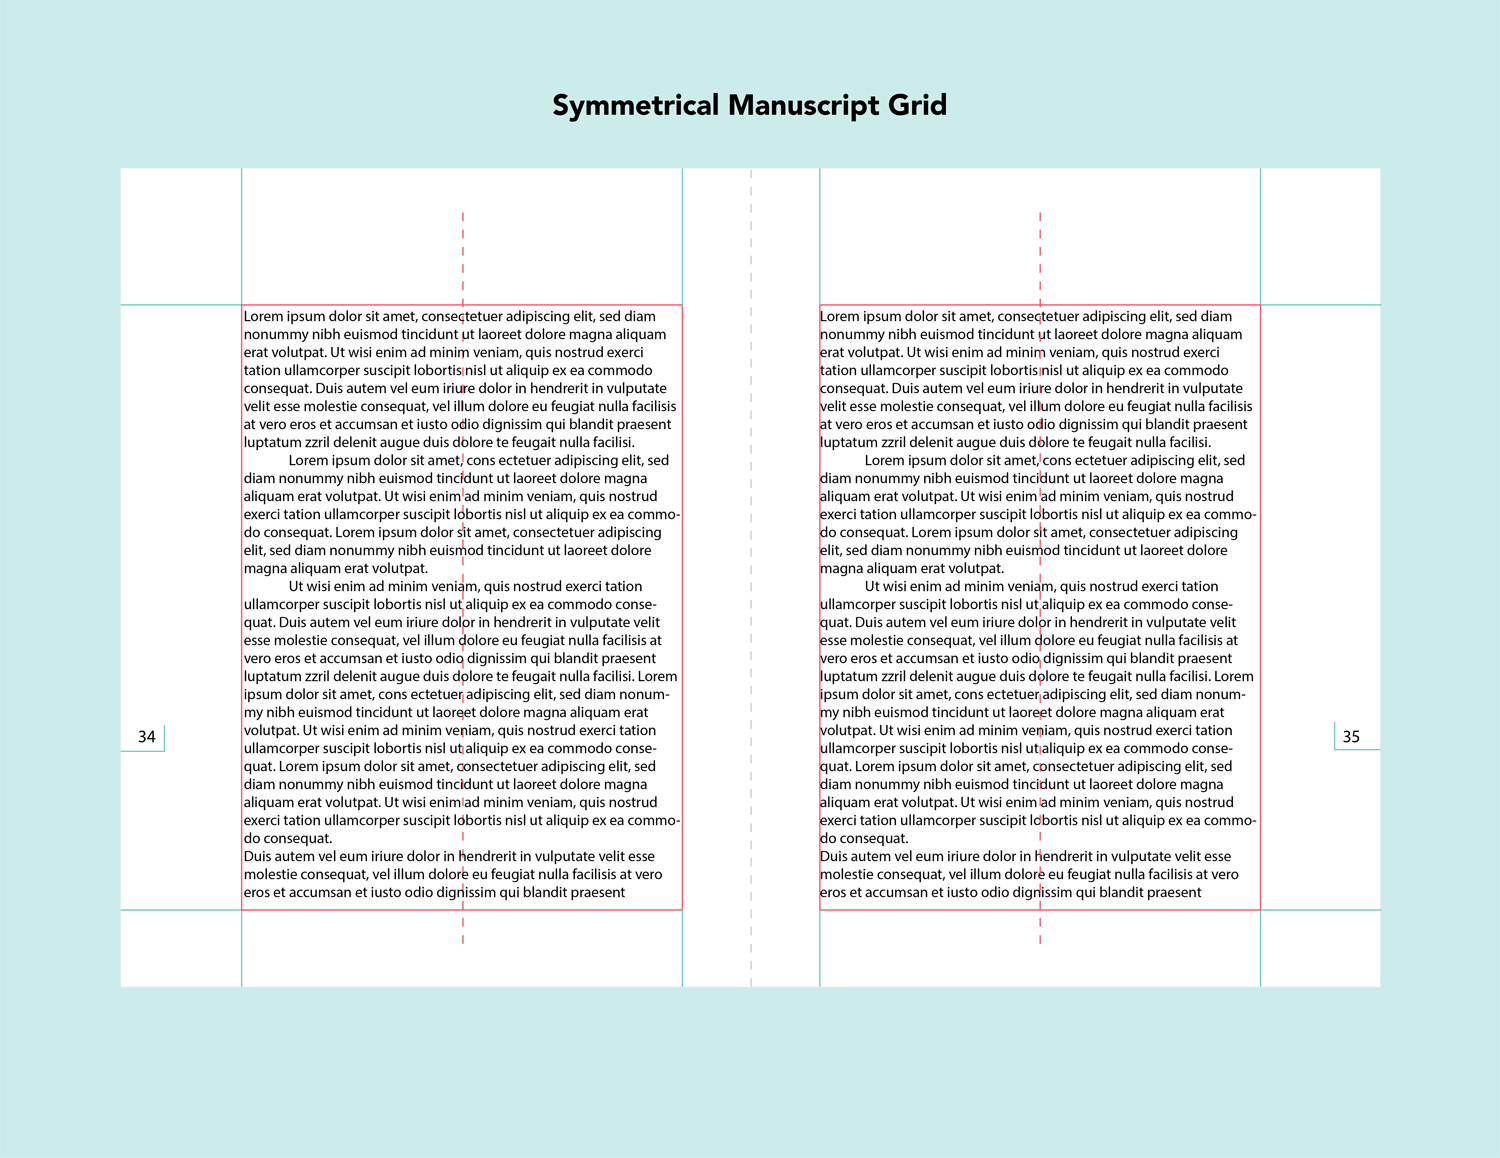 symmetrical manuscript grid layout design types of grids grid design grid system